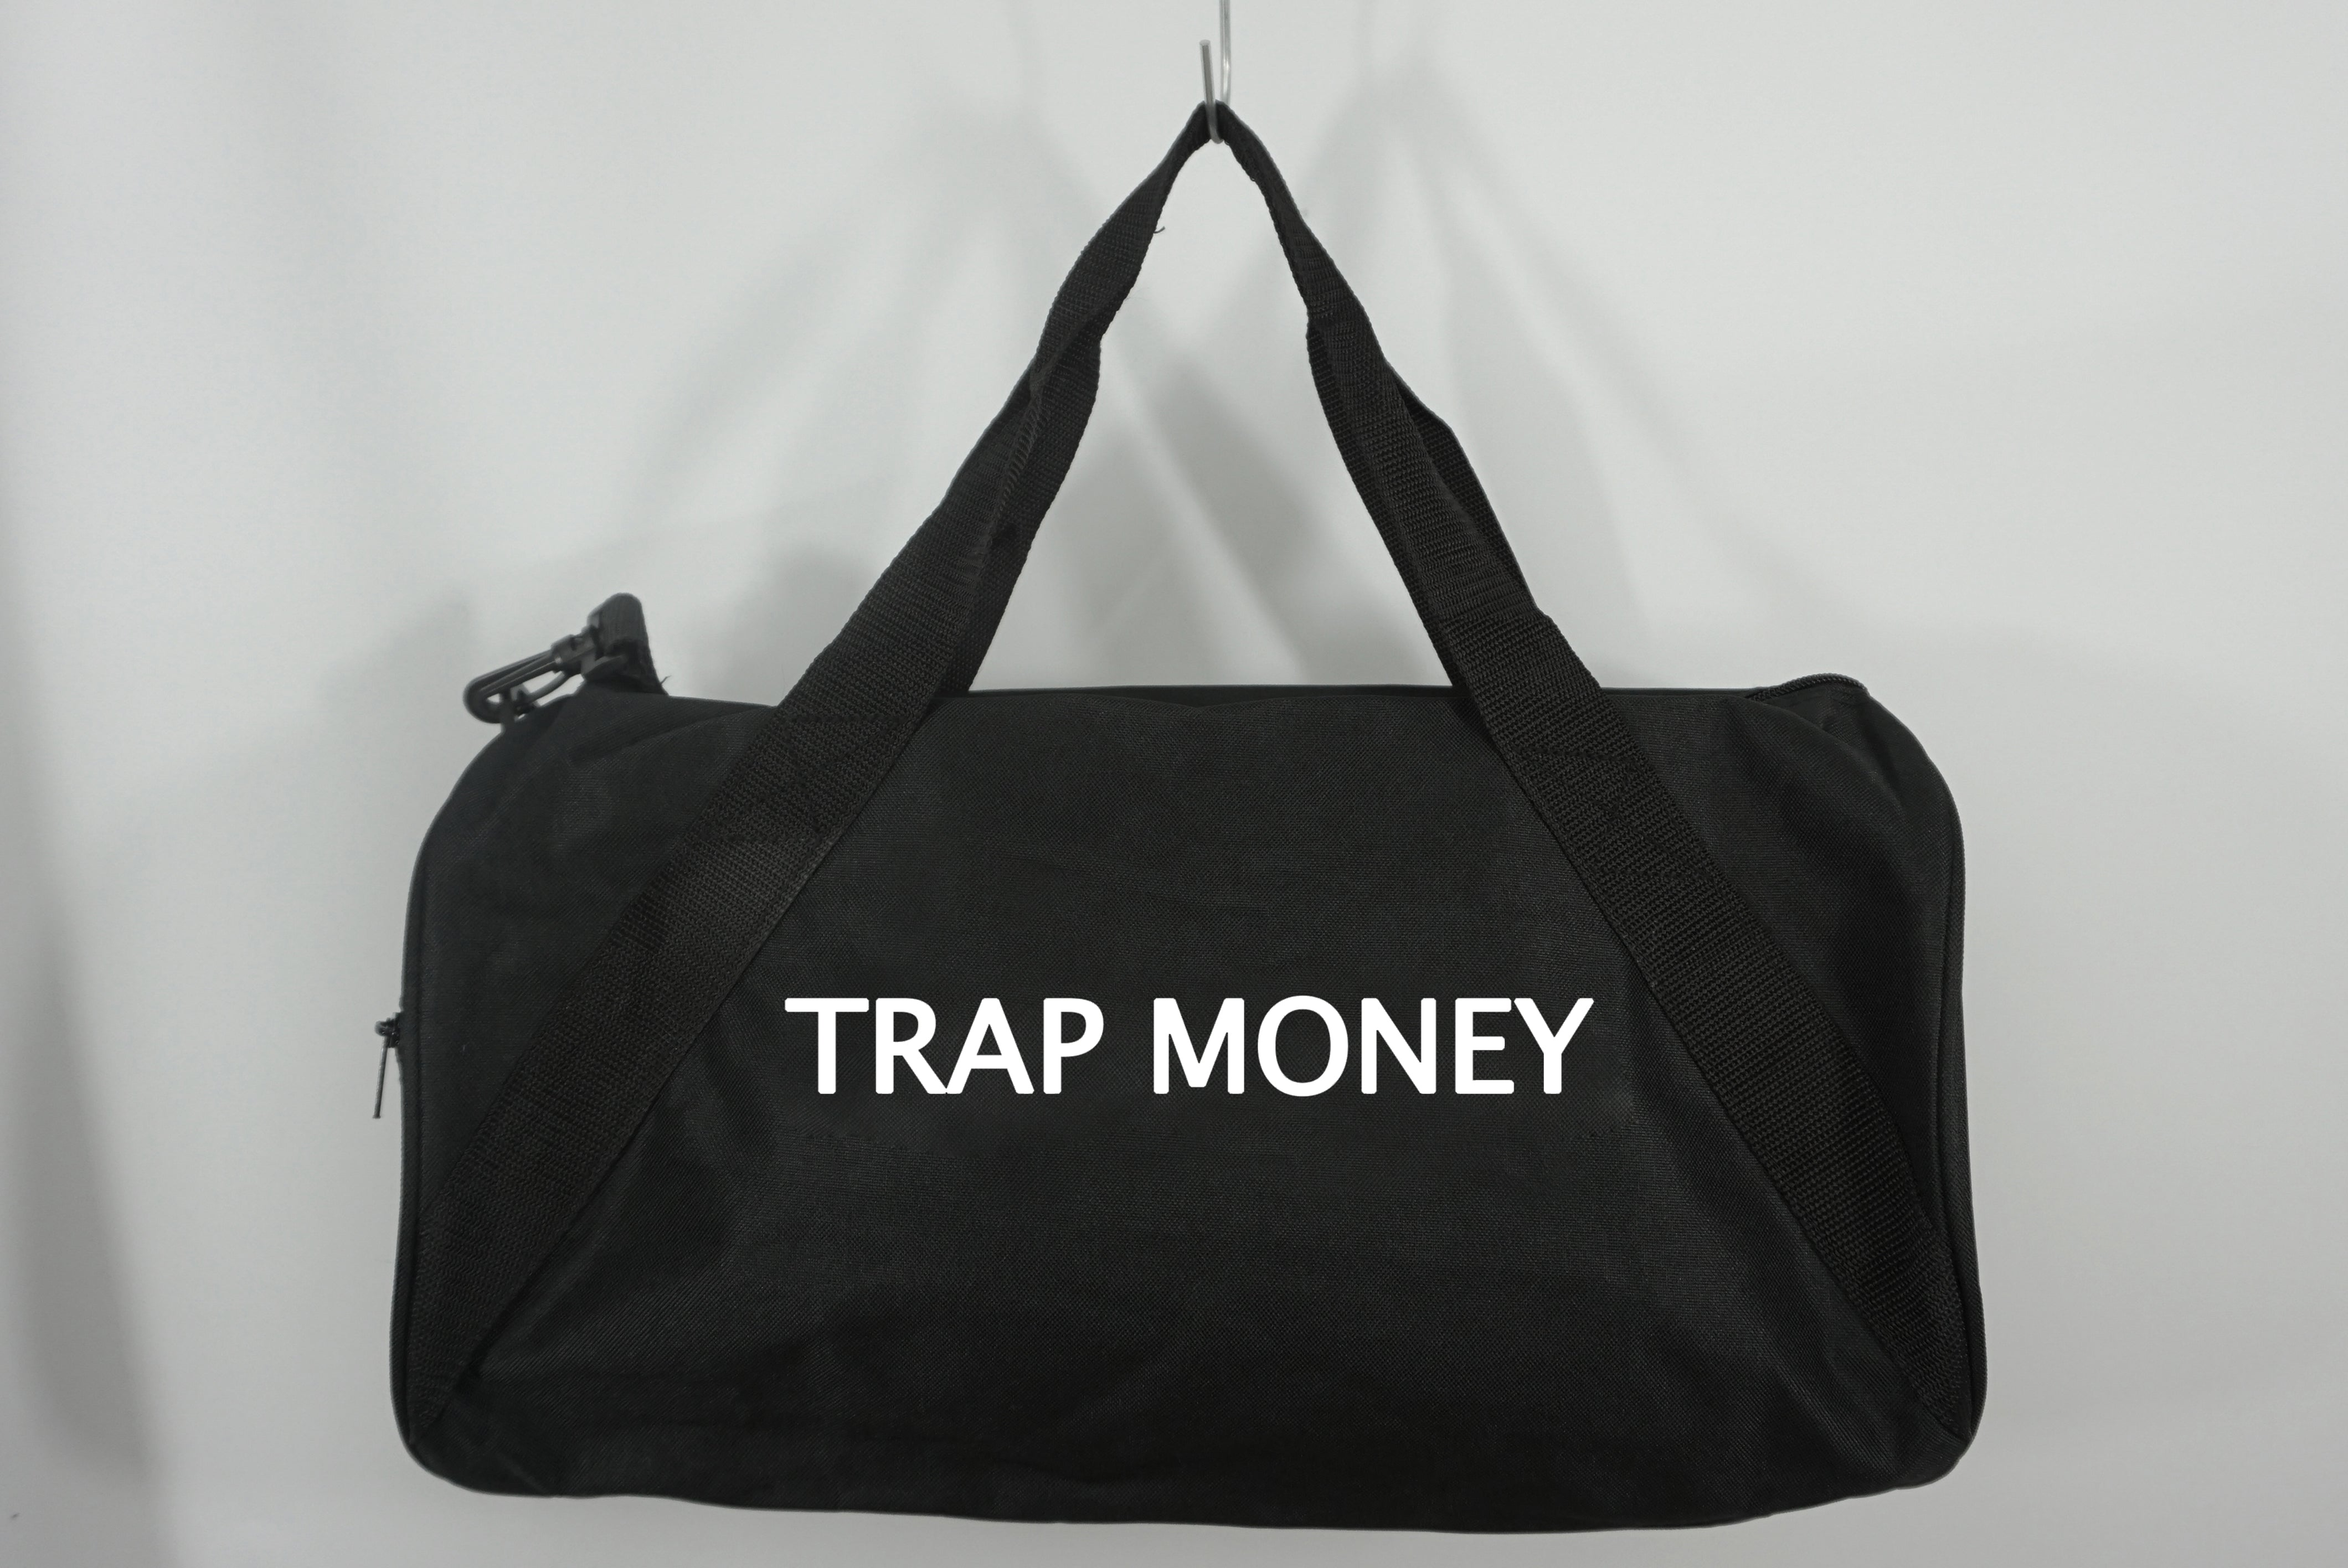 TRAP MONEY DUFFLE BAG